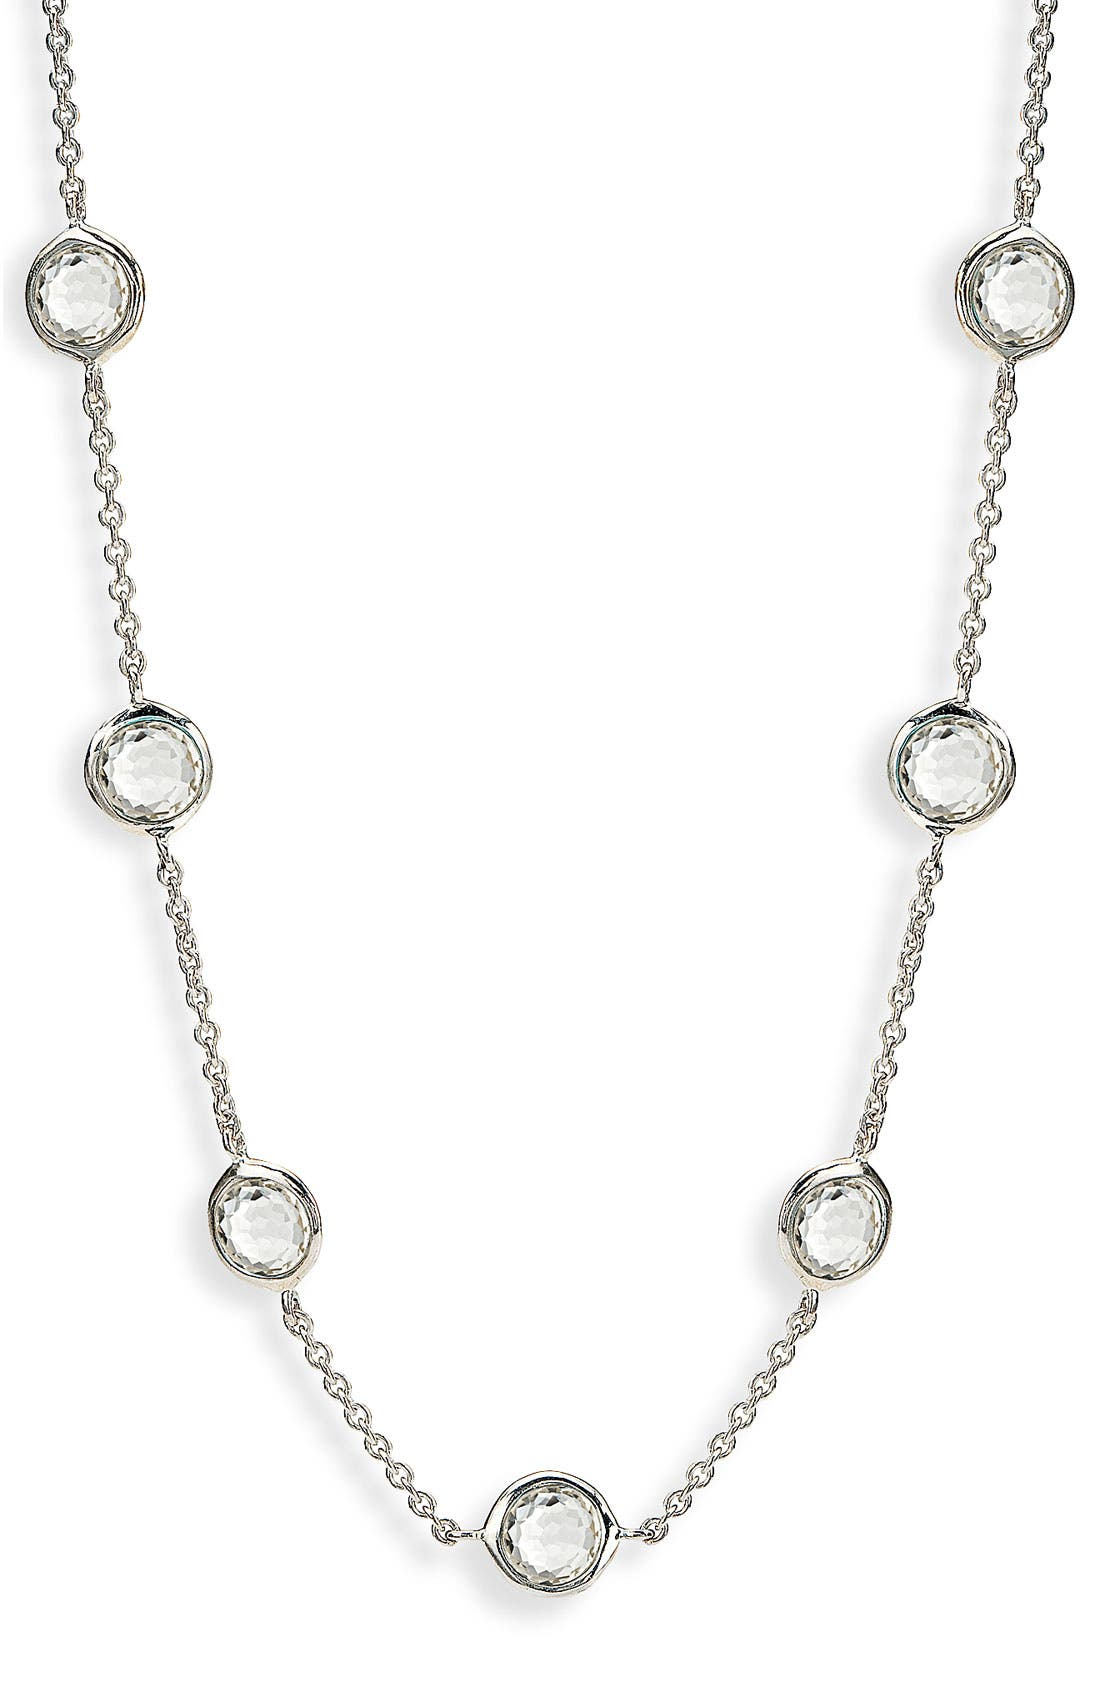 Alternate Image 1 Selected - Ippolita 'Rock Candy' 7-Station Lollipop Necklace